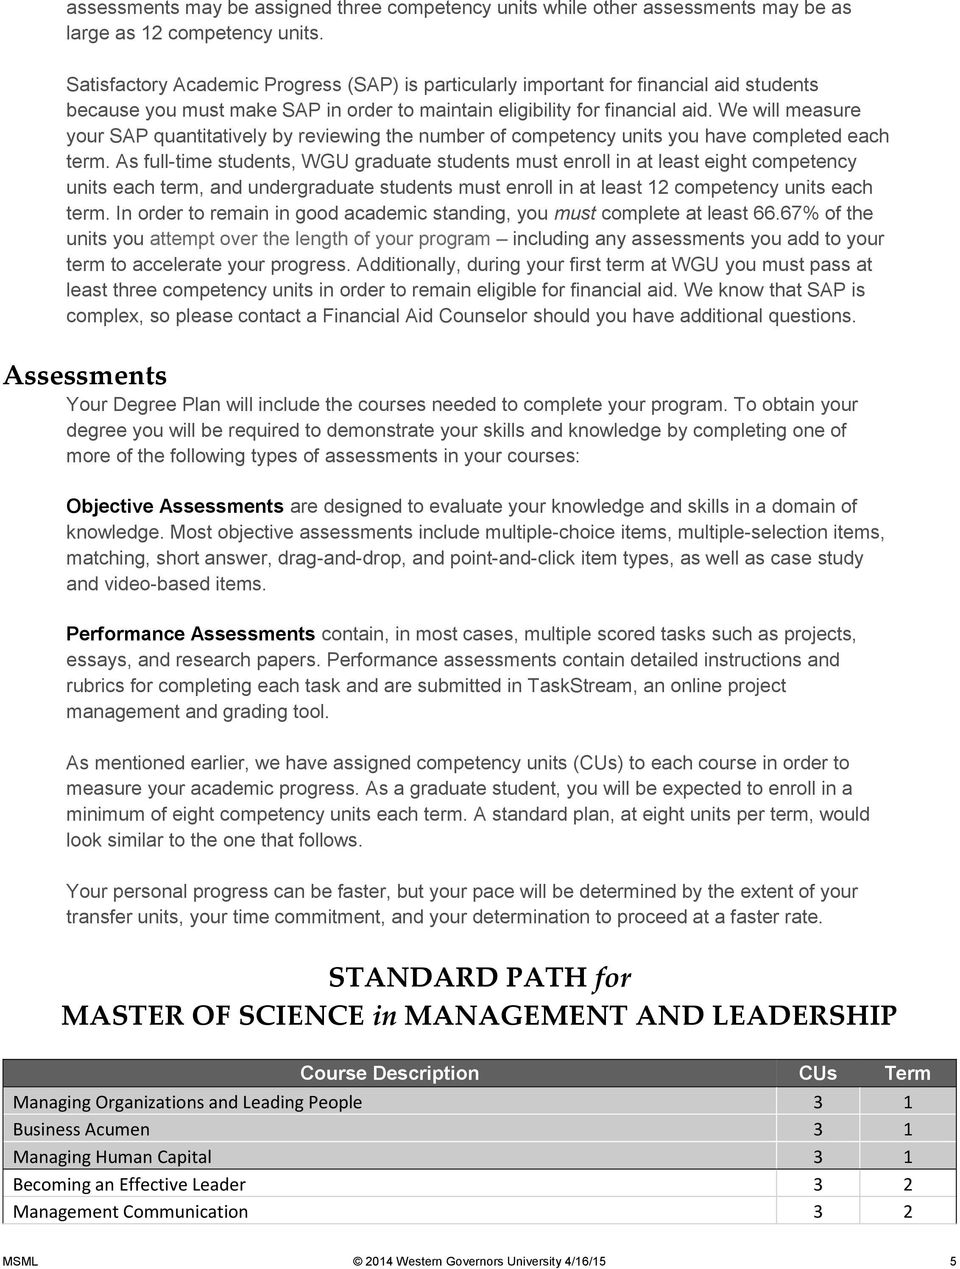 Master of Science, Management and Leadership - PDF